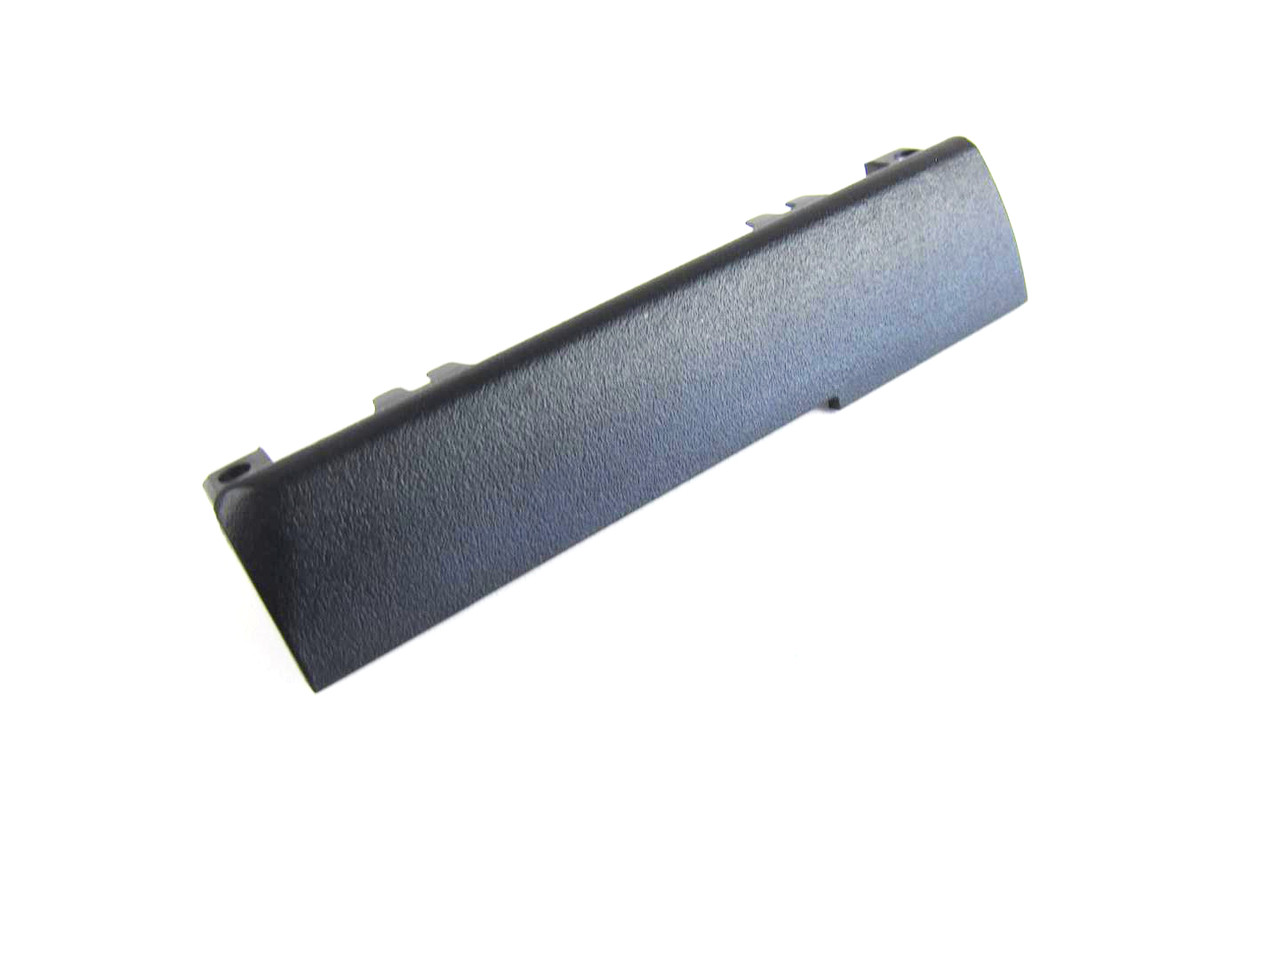 Dell Latitude E6440 Hard Drive Caddy - CYP84